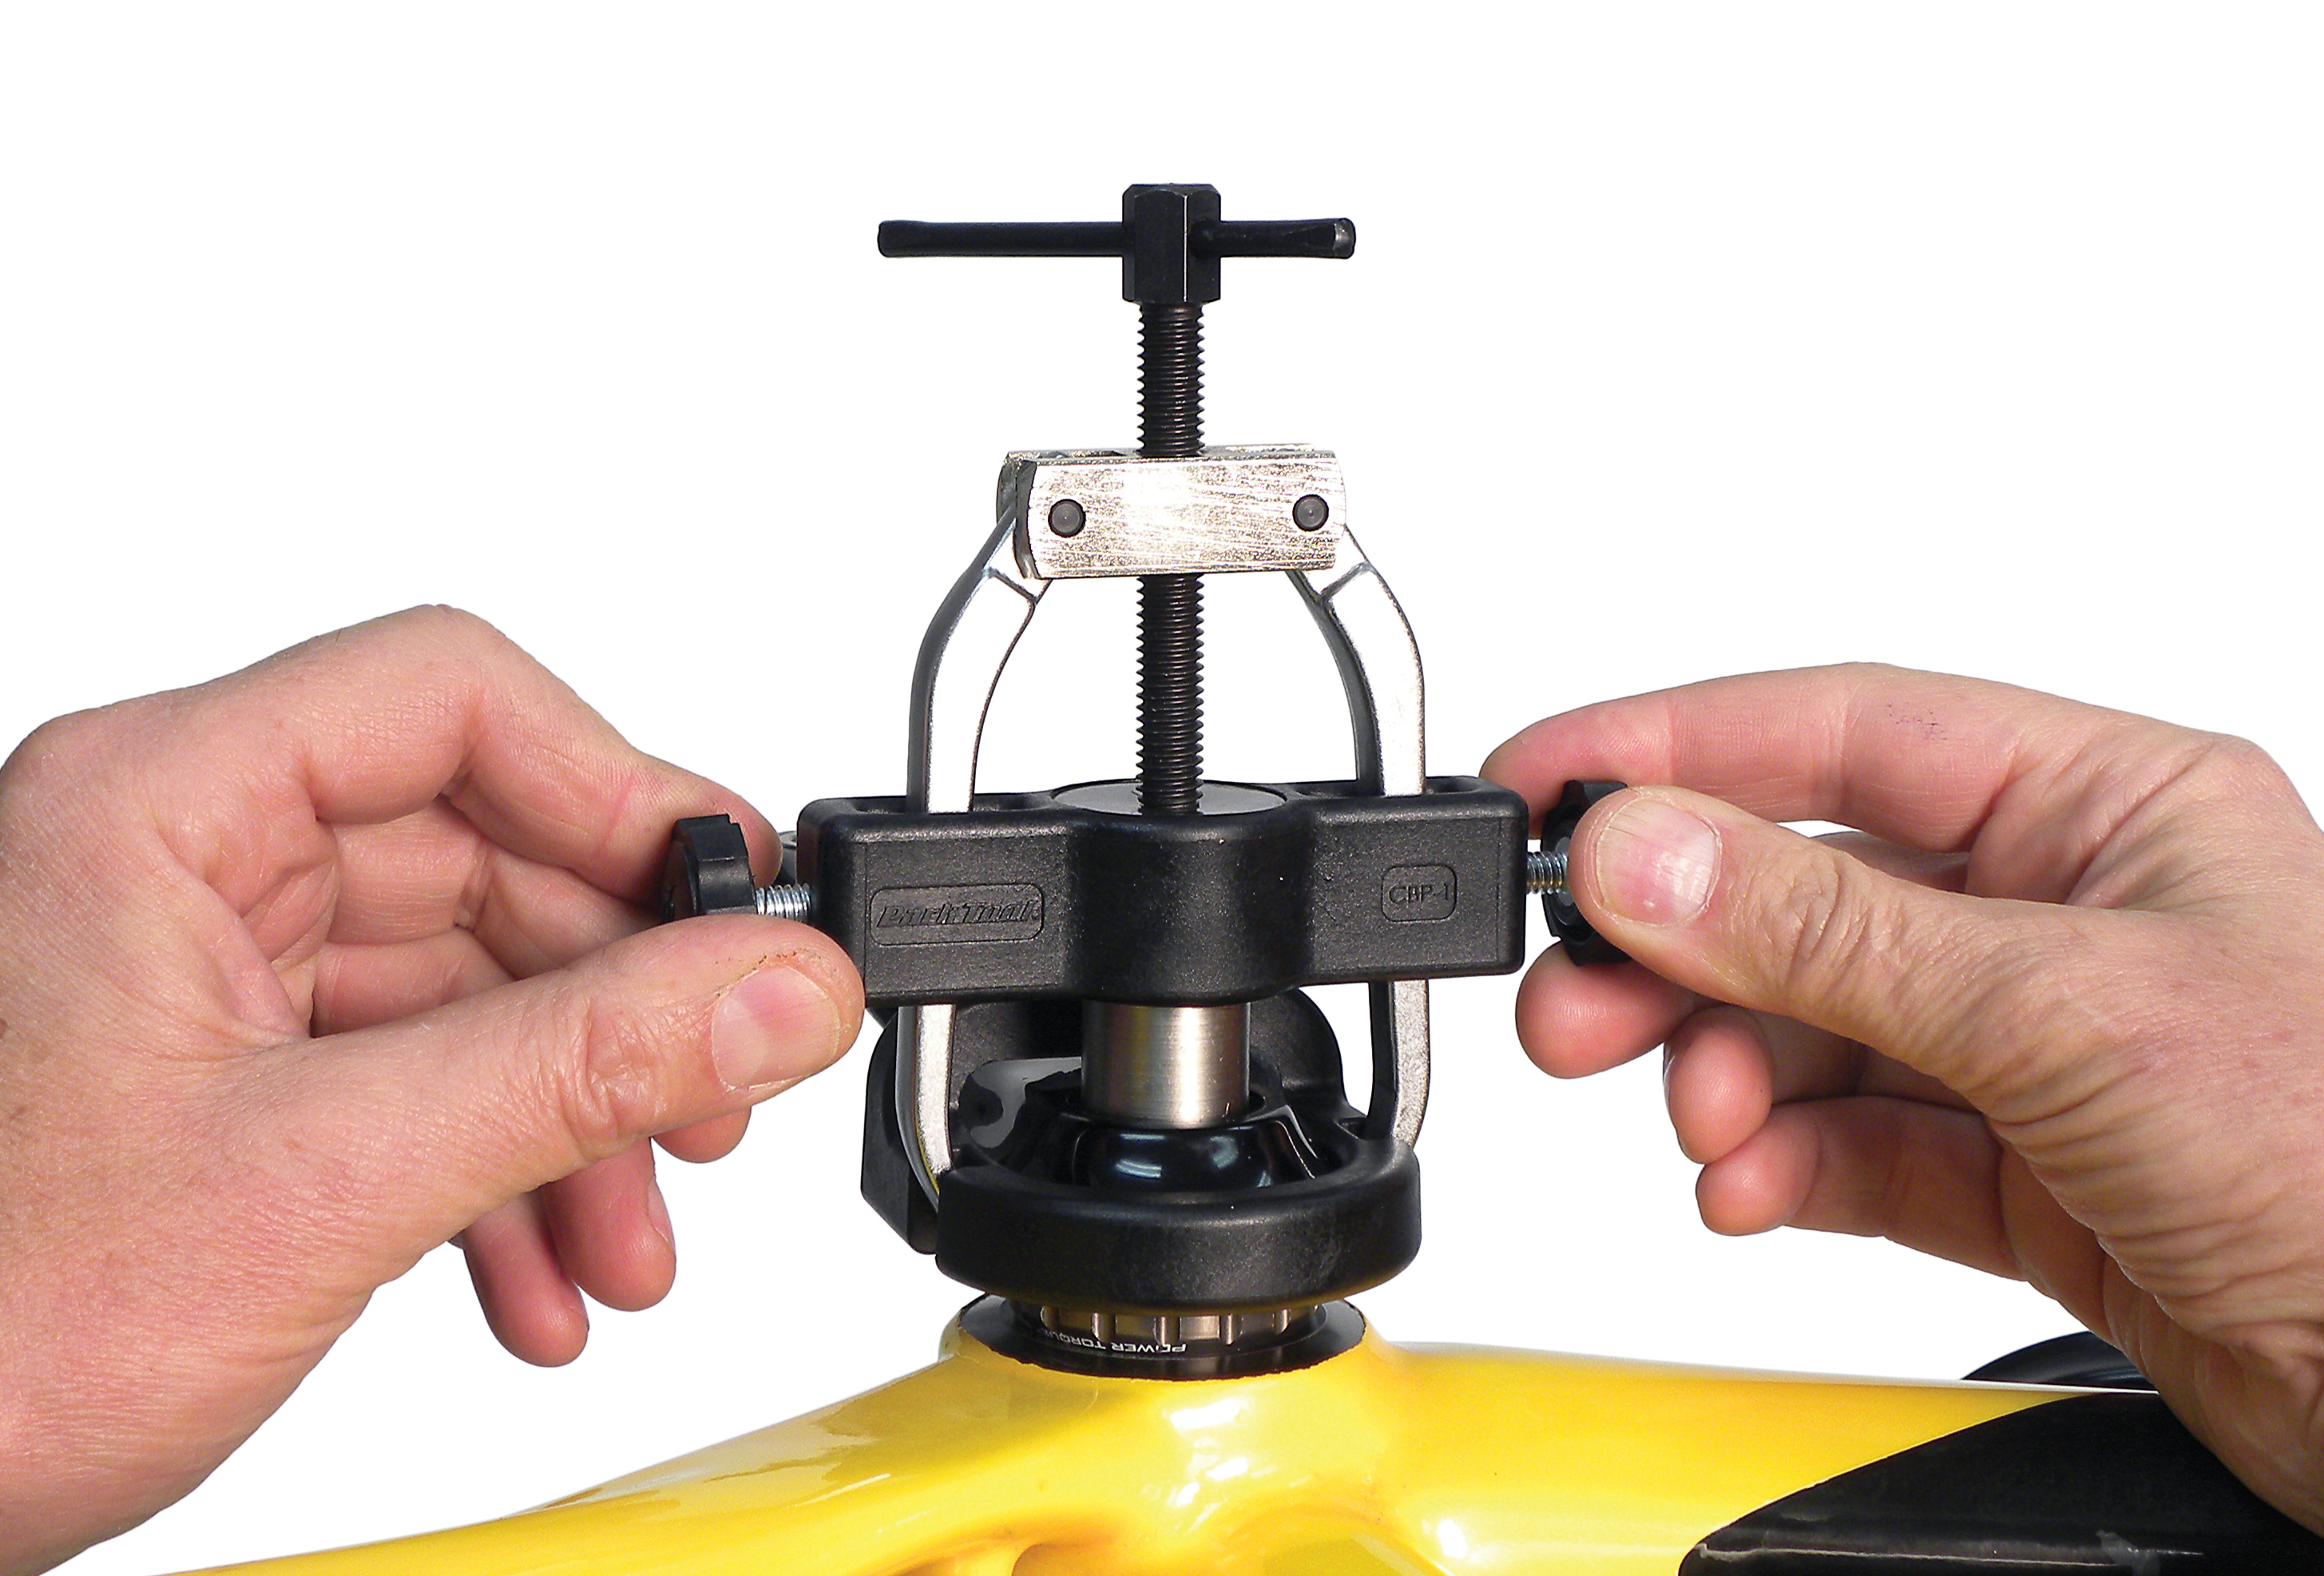 Adjust knobs on puller to remove excessive play at fingers